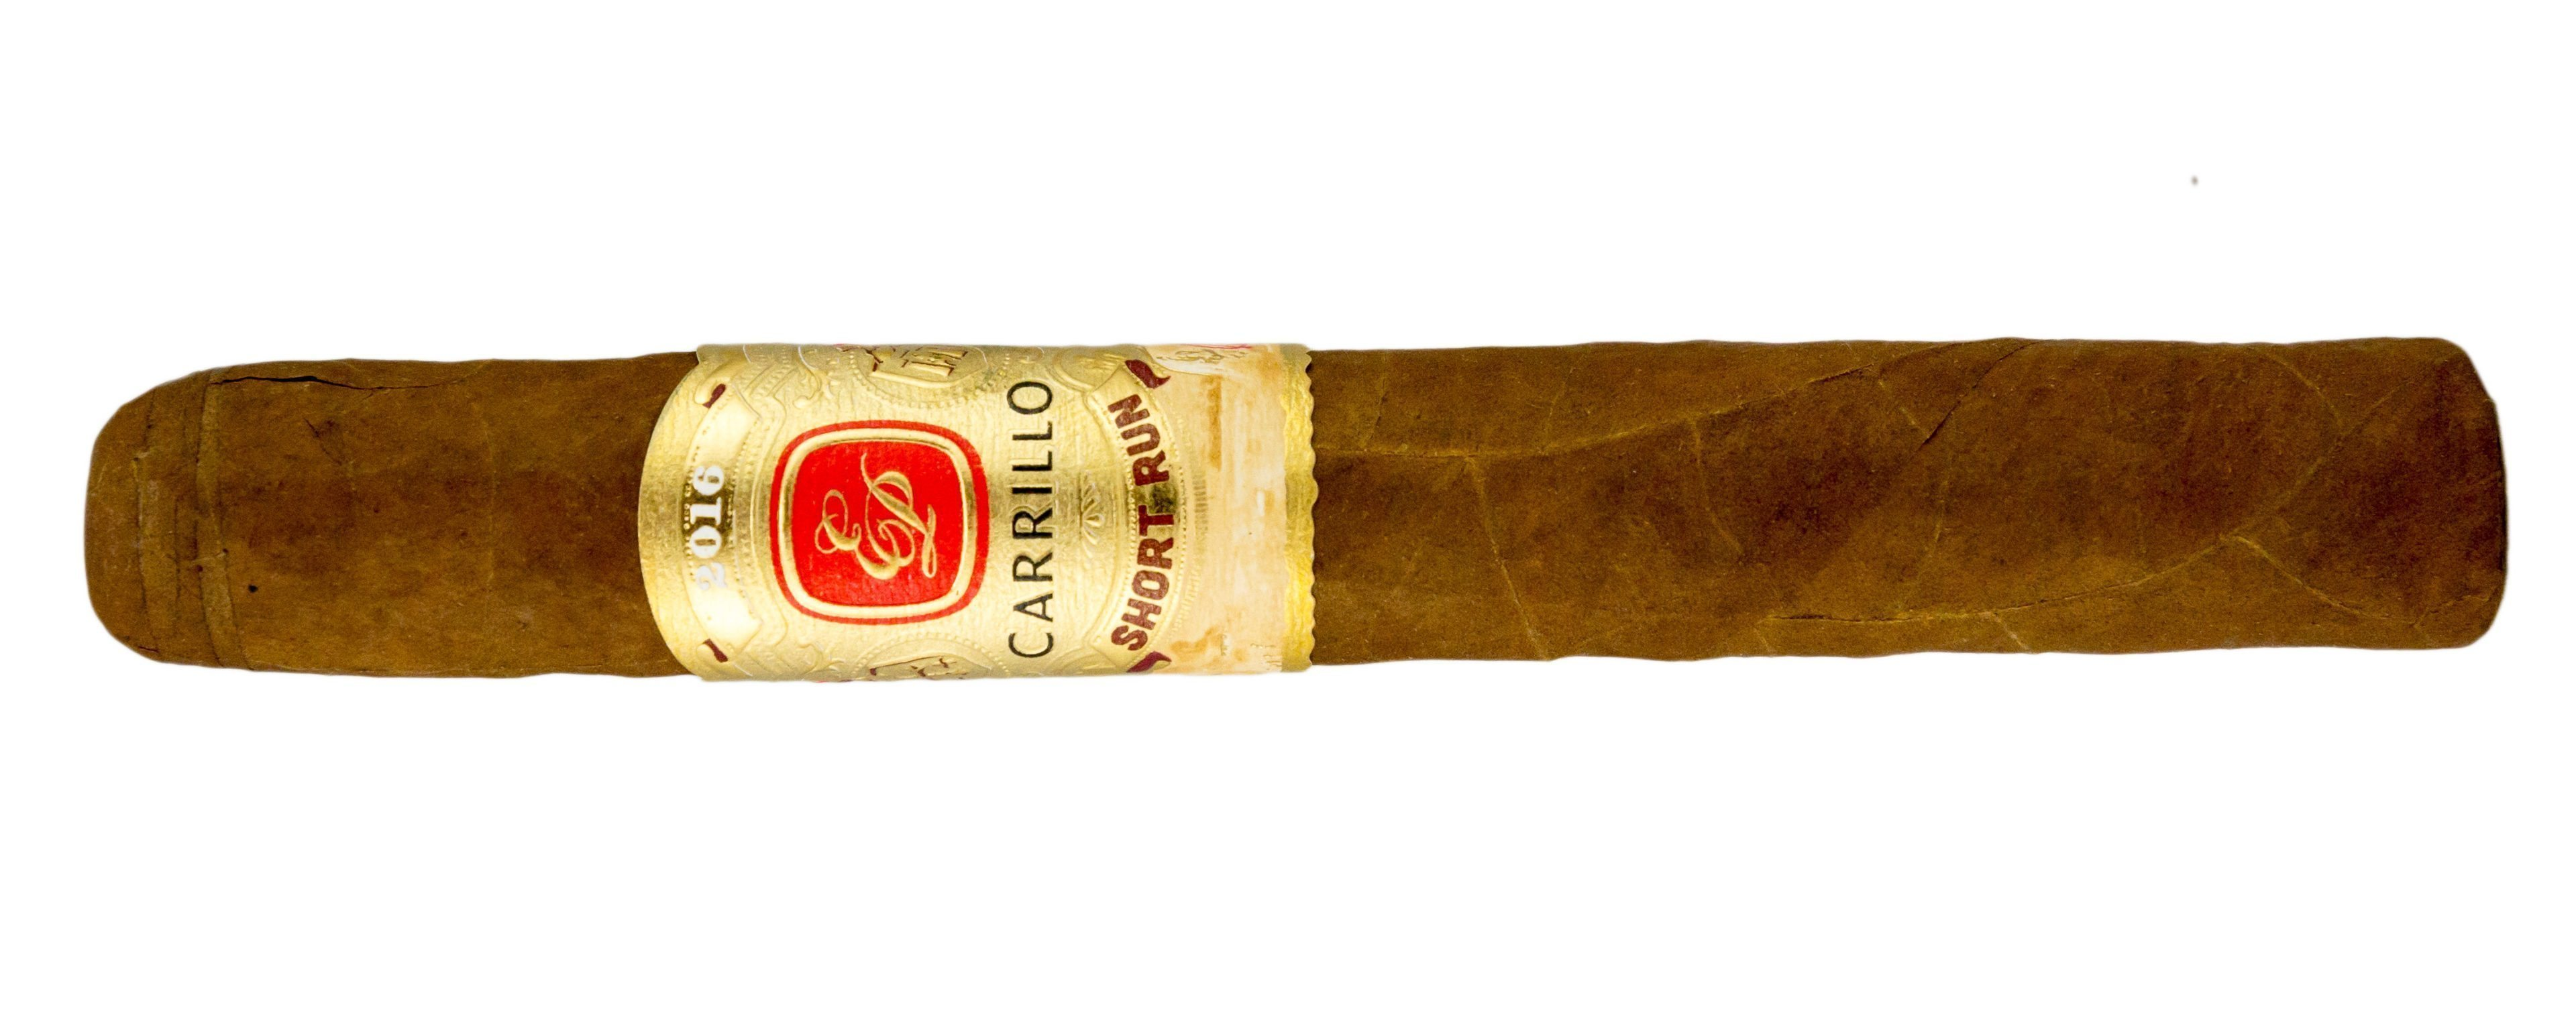 Blind Cigar Review: E.P. Carrillo | Short Run 2016